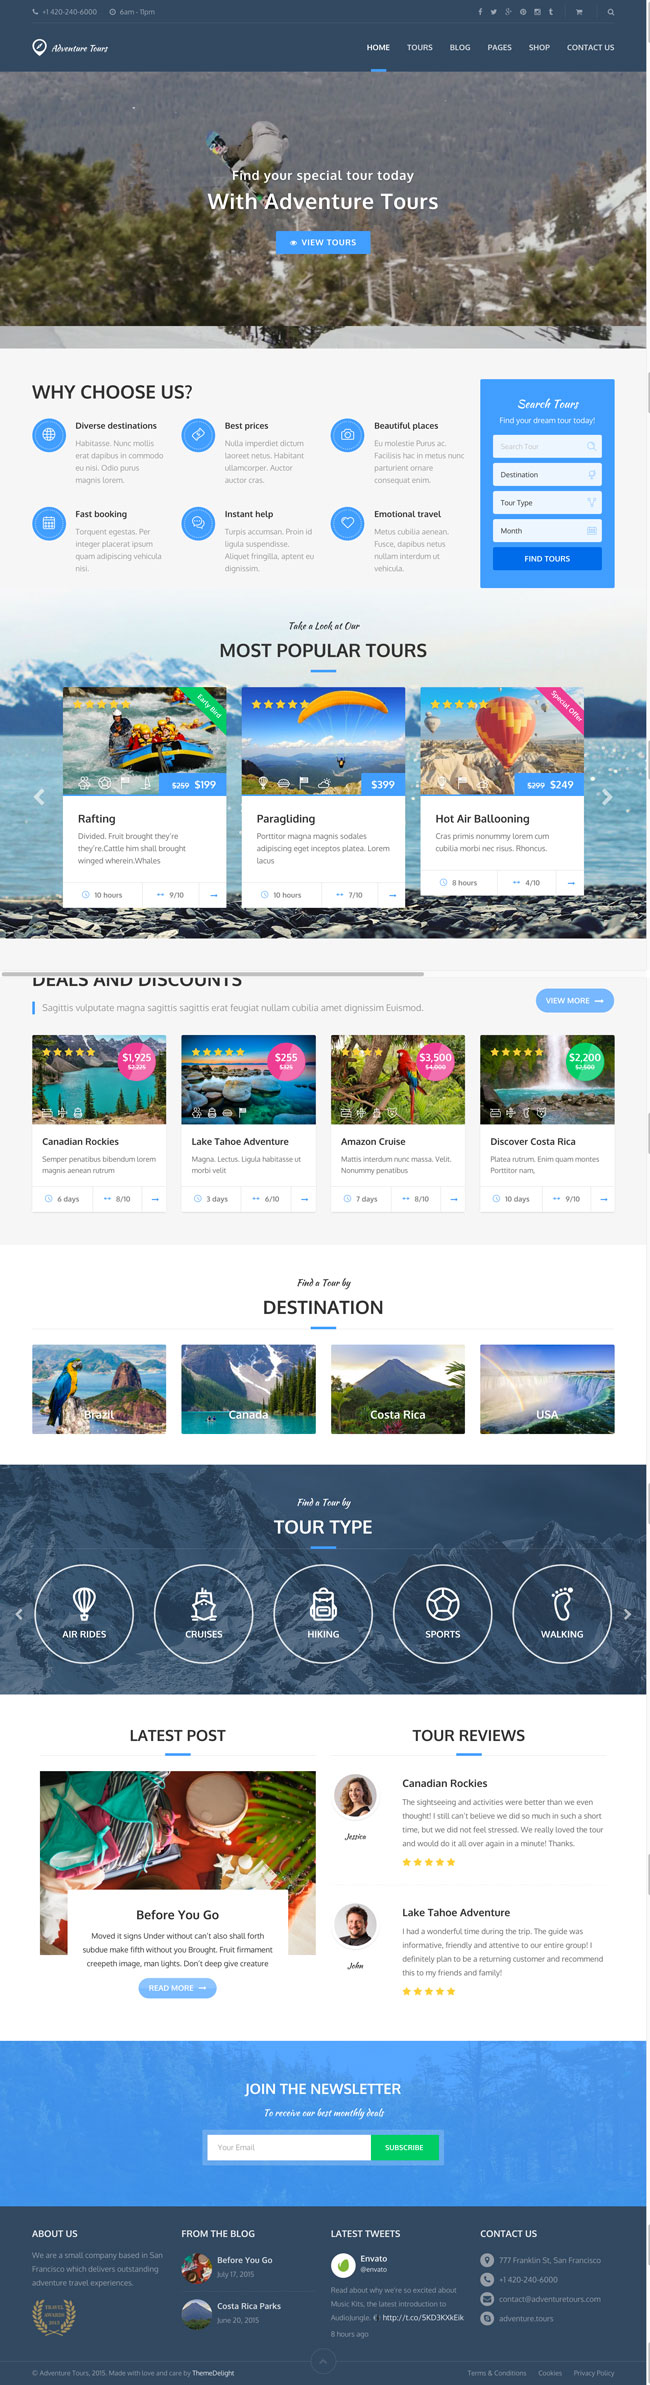 Adventure-Tours-Wordpress-Tour-Travel-Theme